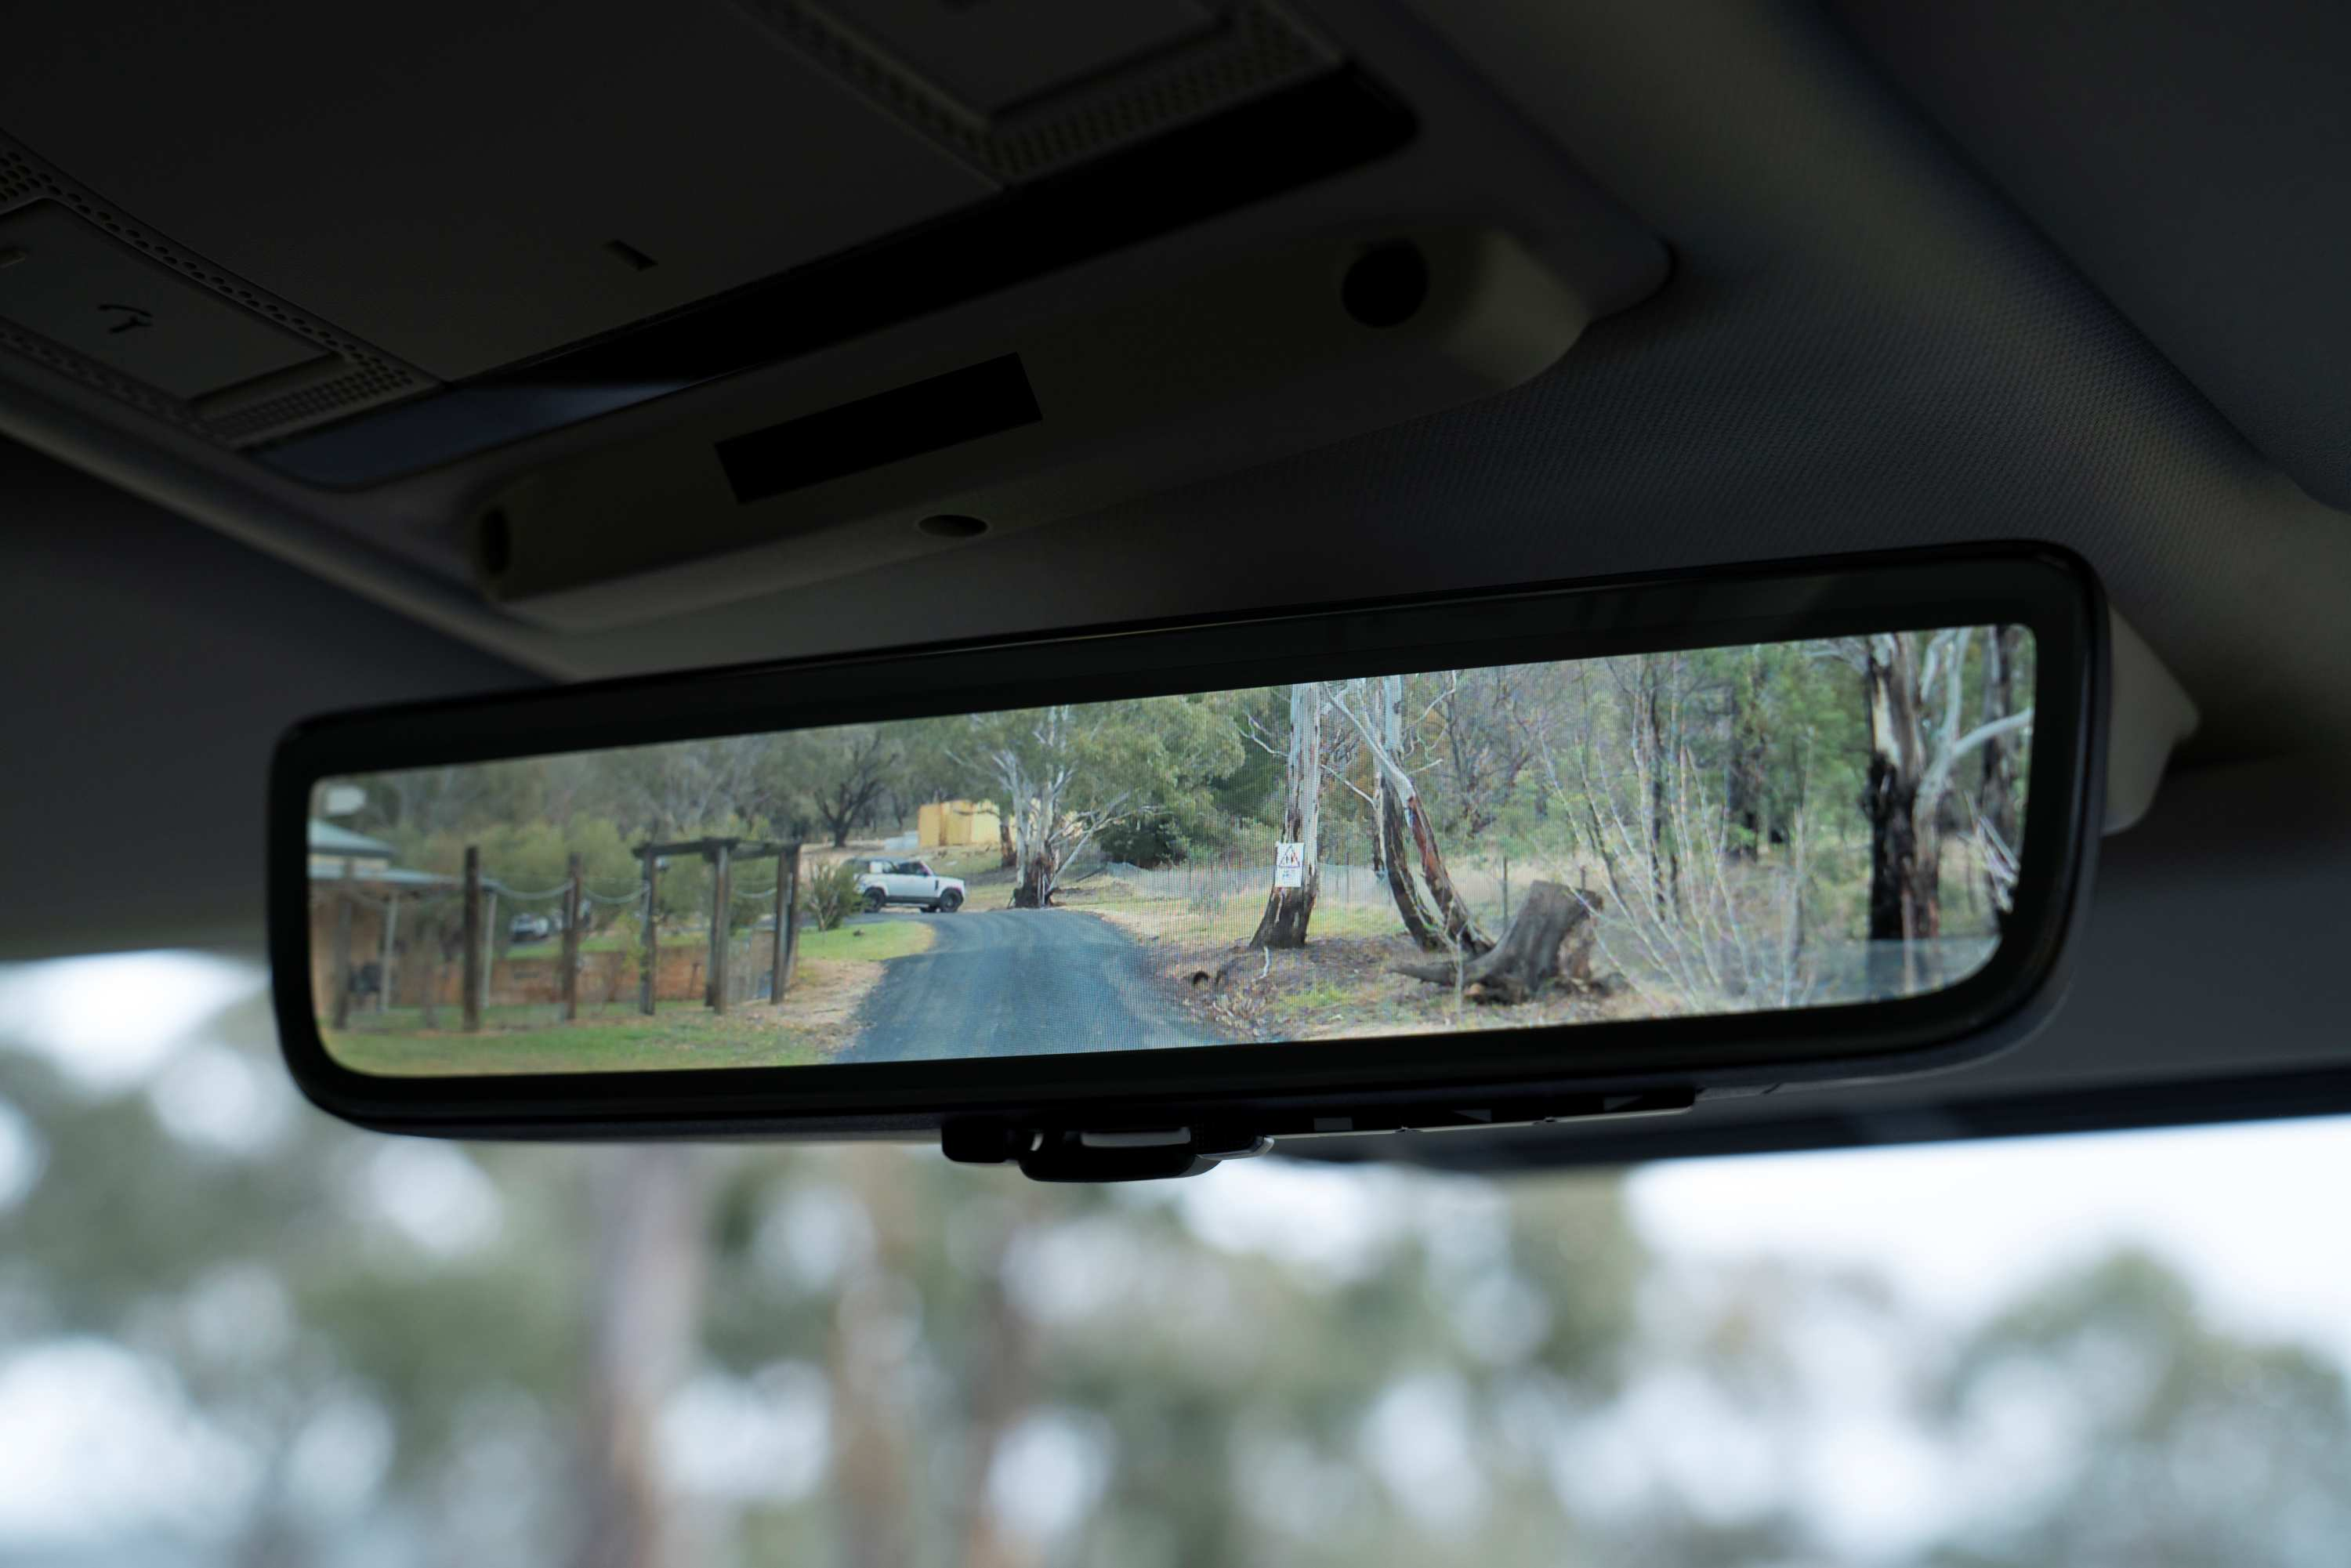 Land Rover Defender camera mirror